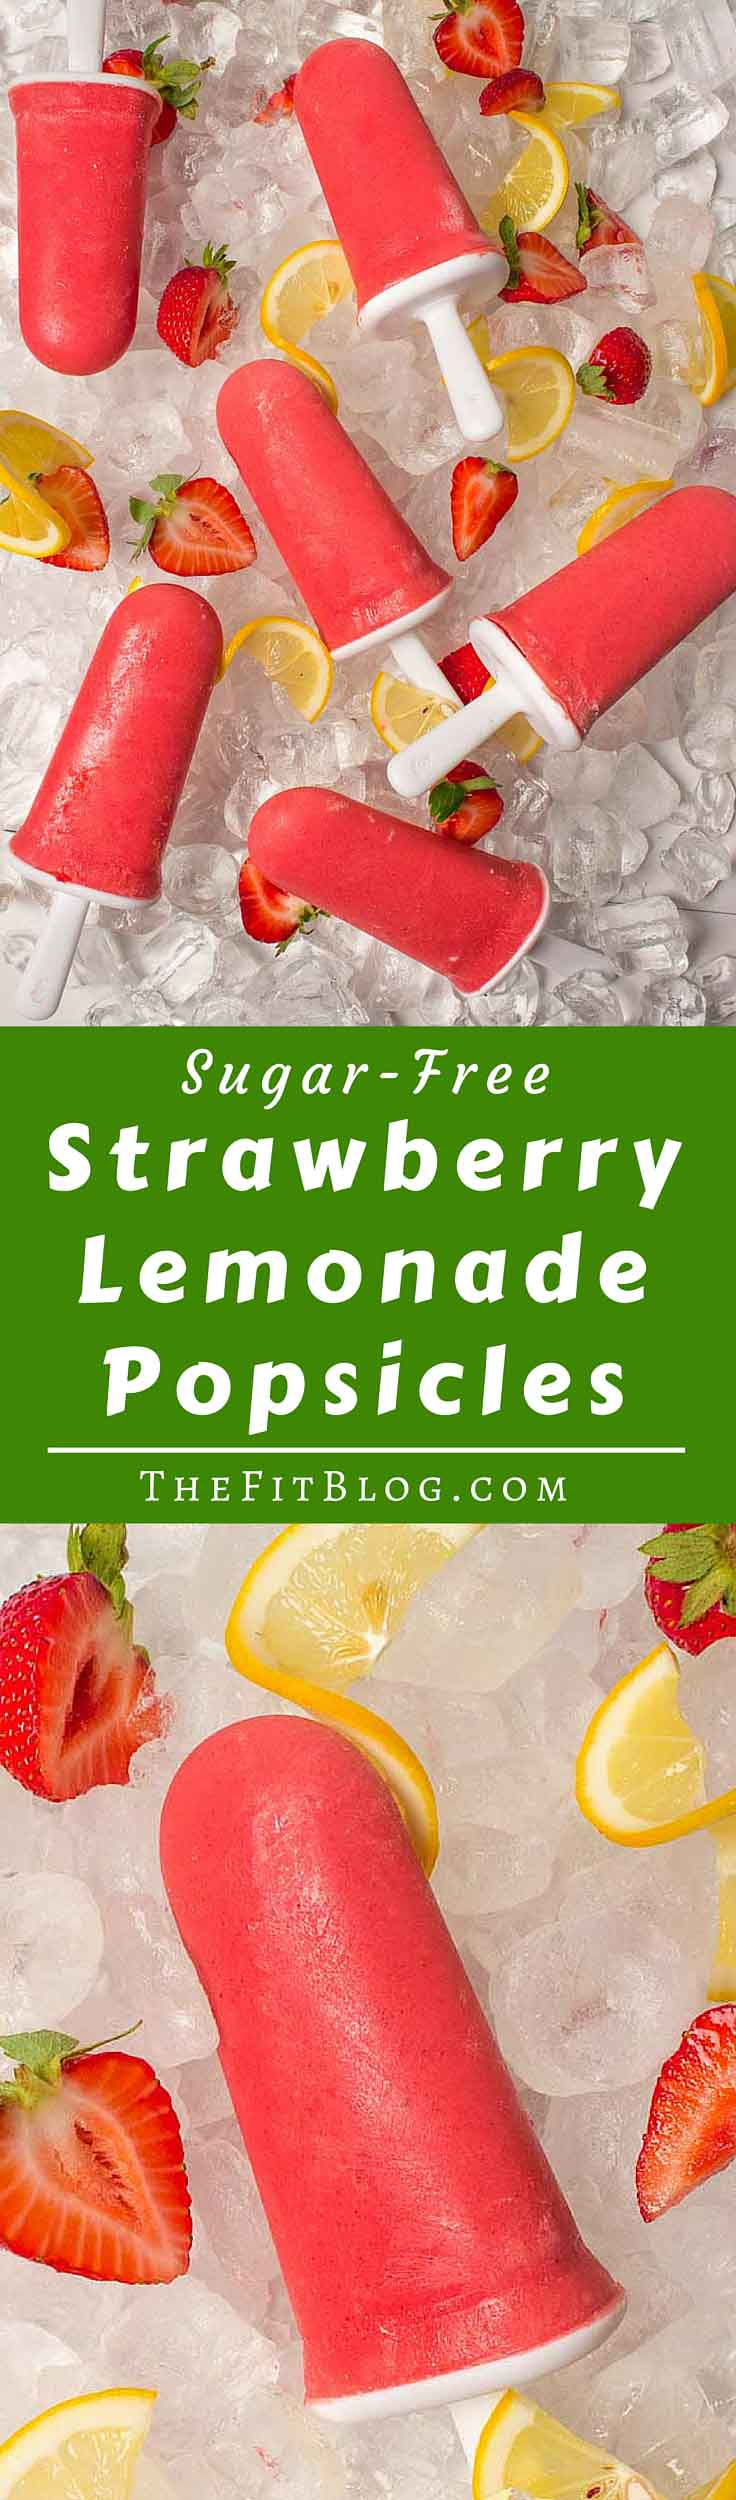 Nothing is better at fighting the summer heat than these deliciously cool homemade sugar-free popsicles. They are low-carb Stevia popsicles perfect for diabetics. #popsicles ##healthyeating #healthyrecipes #diabetesdiet #diabetesrecipe #diabeticdiet #diabeticfood #diabeticrecipe #diabeticfriendly #lowcarb #lowcarbdiet #lowcarbrecipes